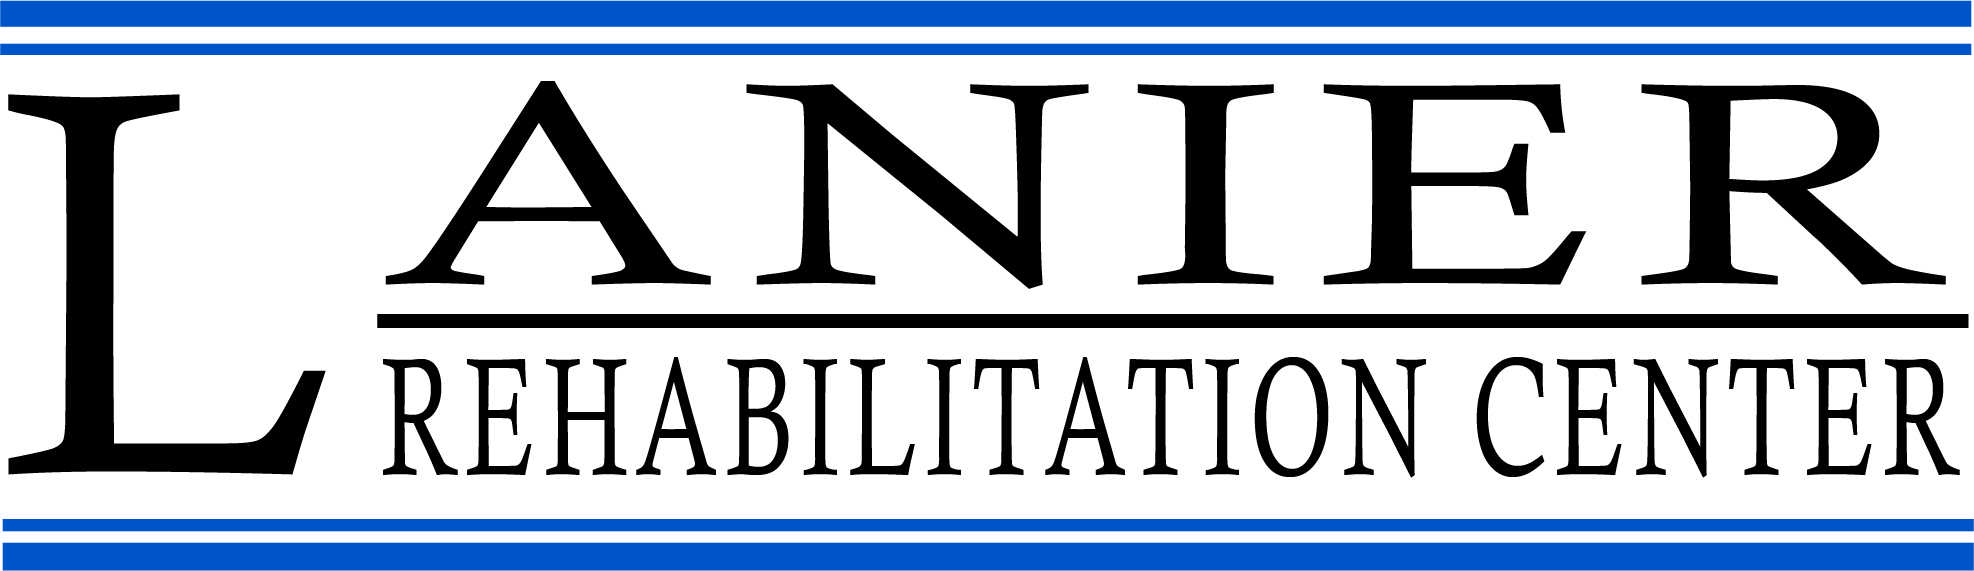 Lanier Rehabilitation Center logo